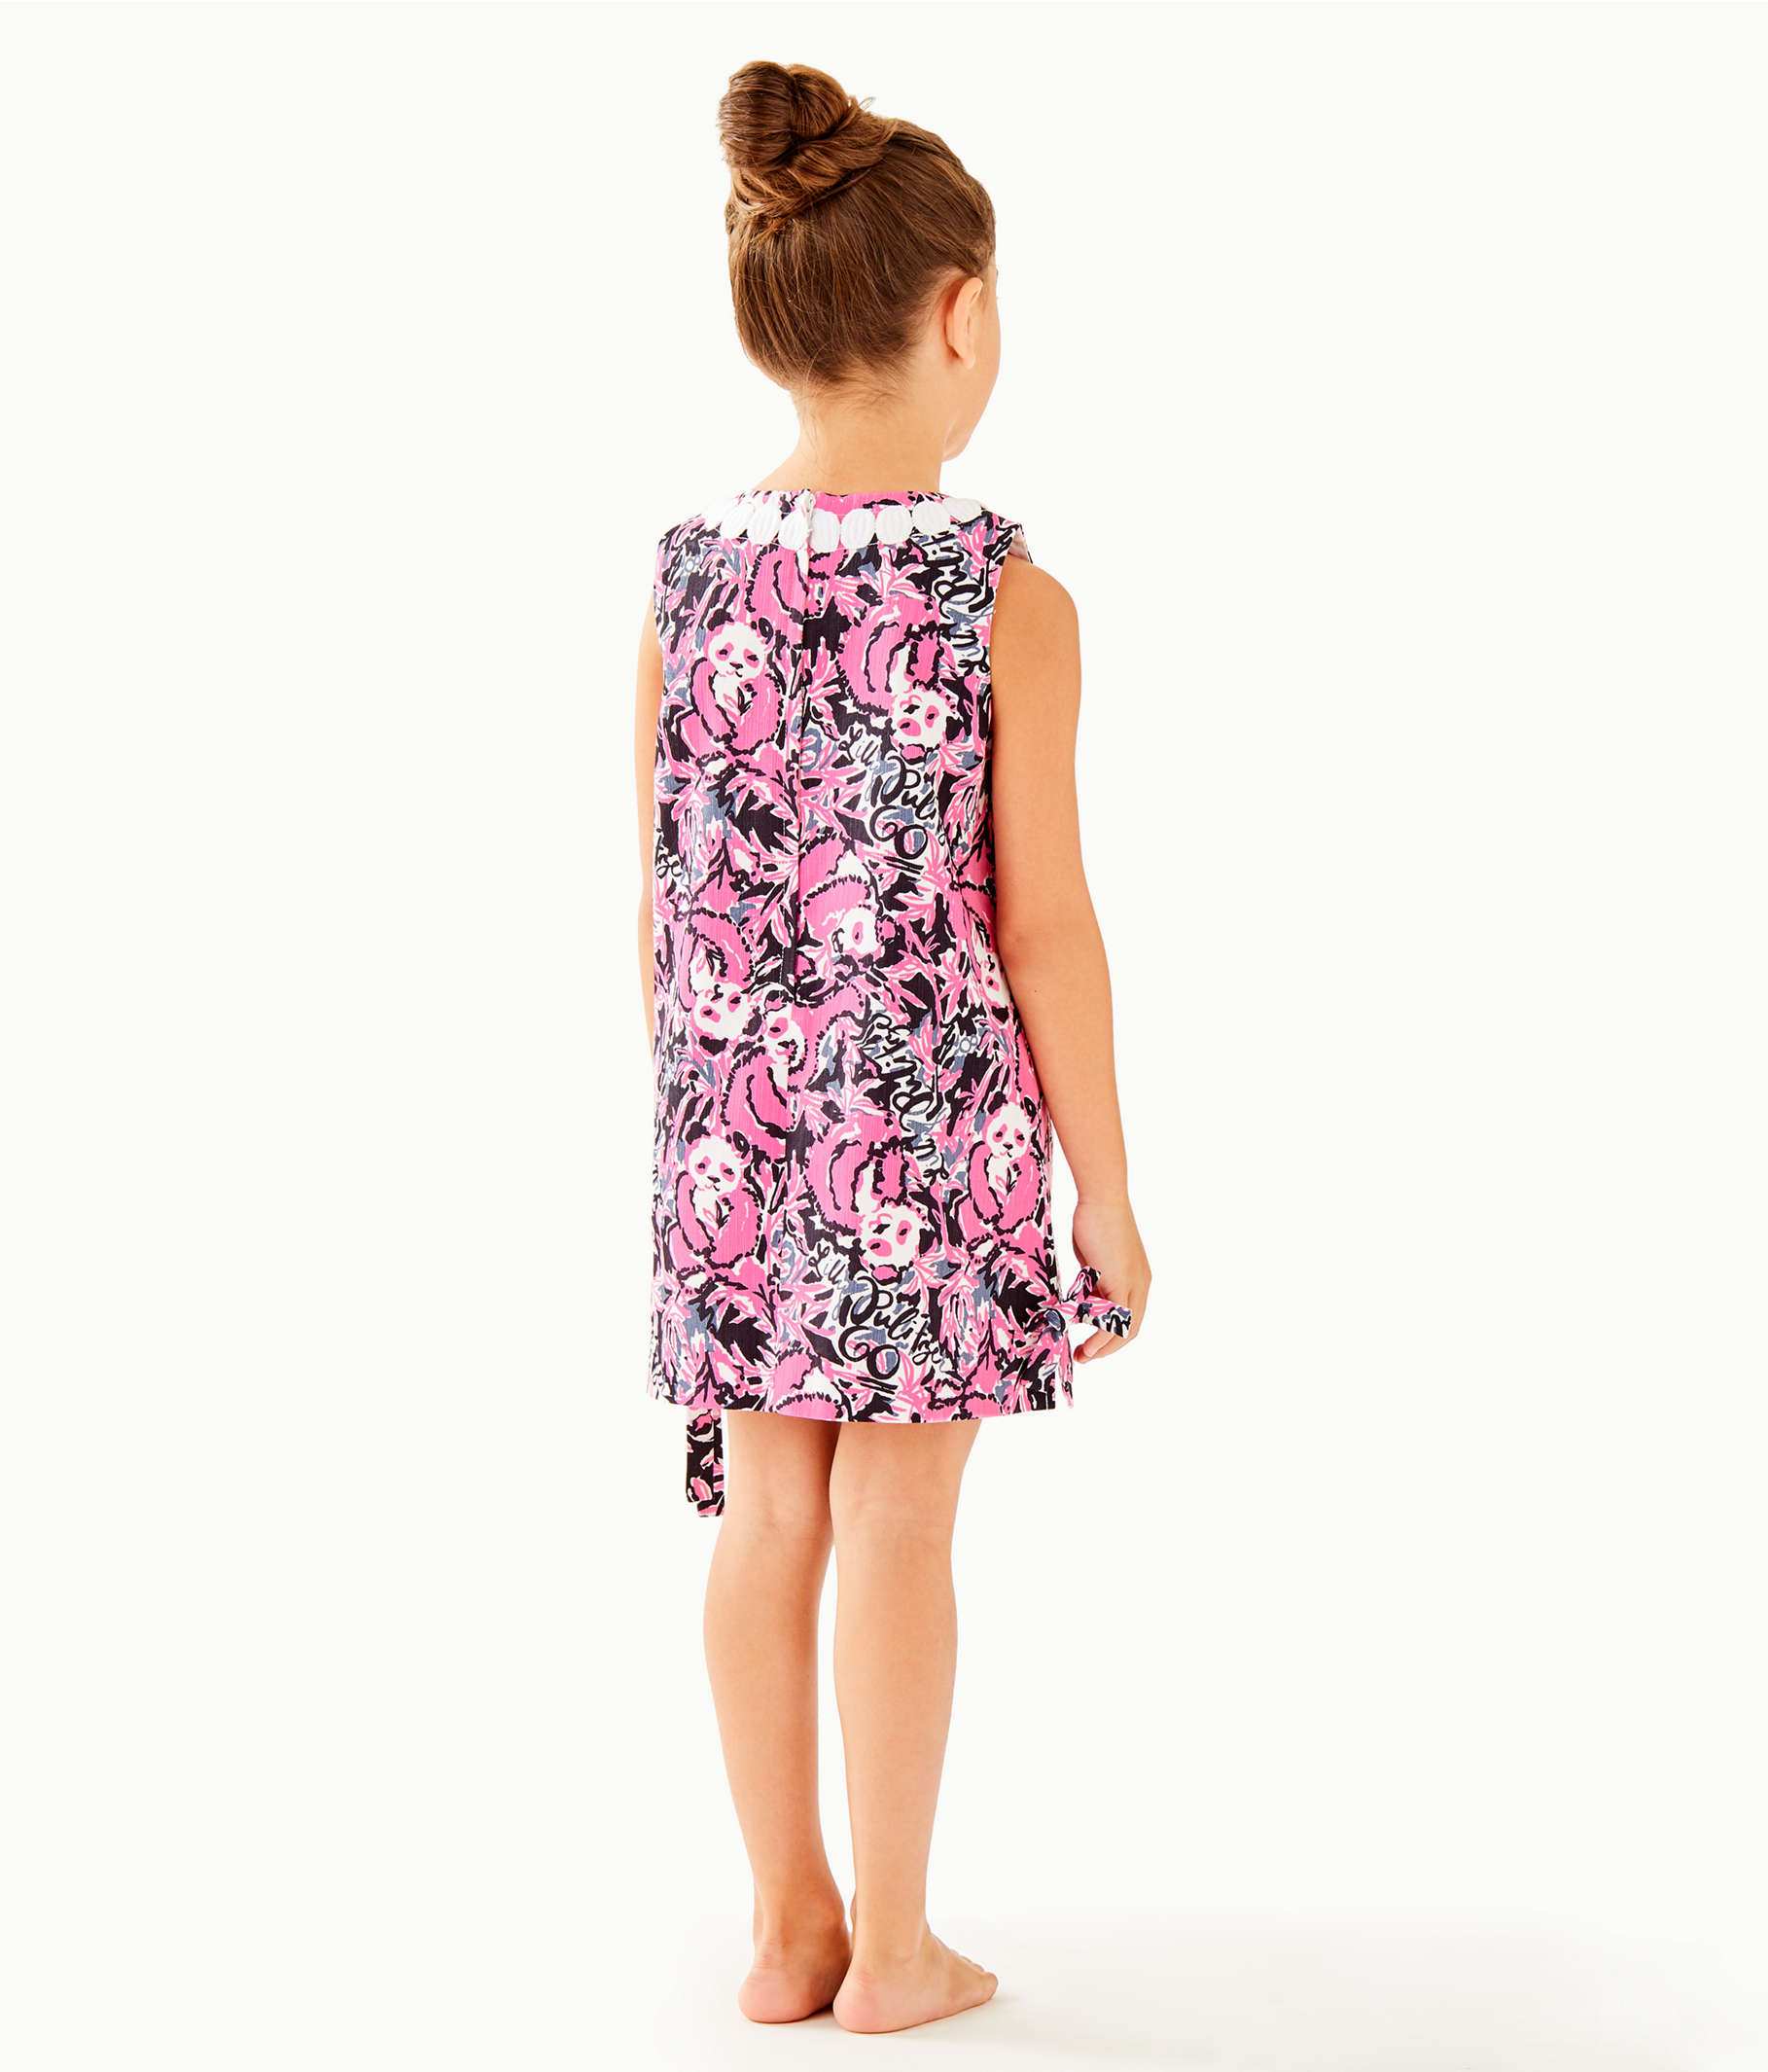 81d01c1f6 Girls Little Lilly Classic Shift Dress, Hibiscus Pink Hangin With My Boo,  large ...